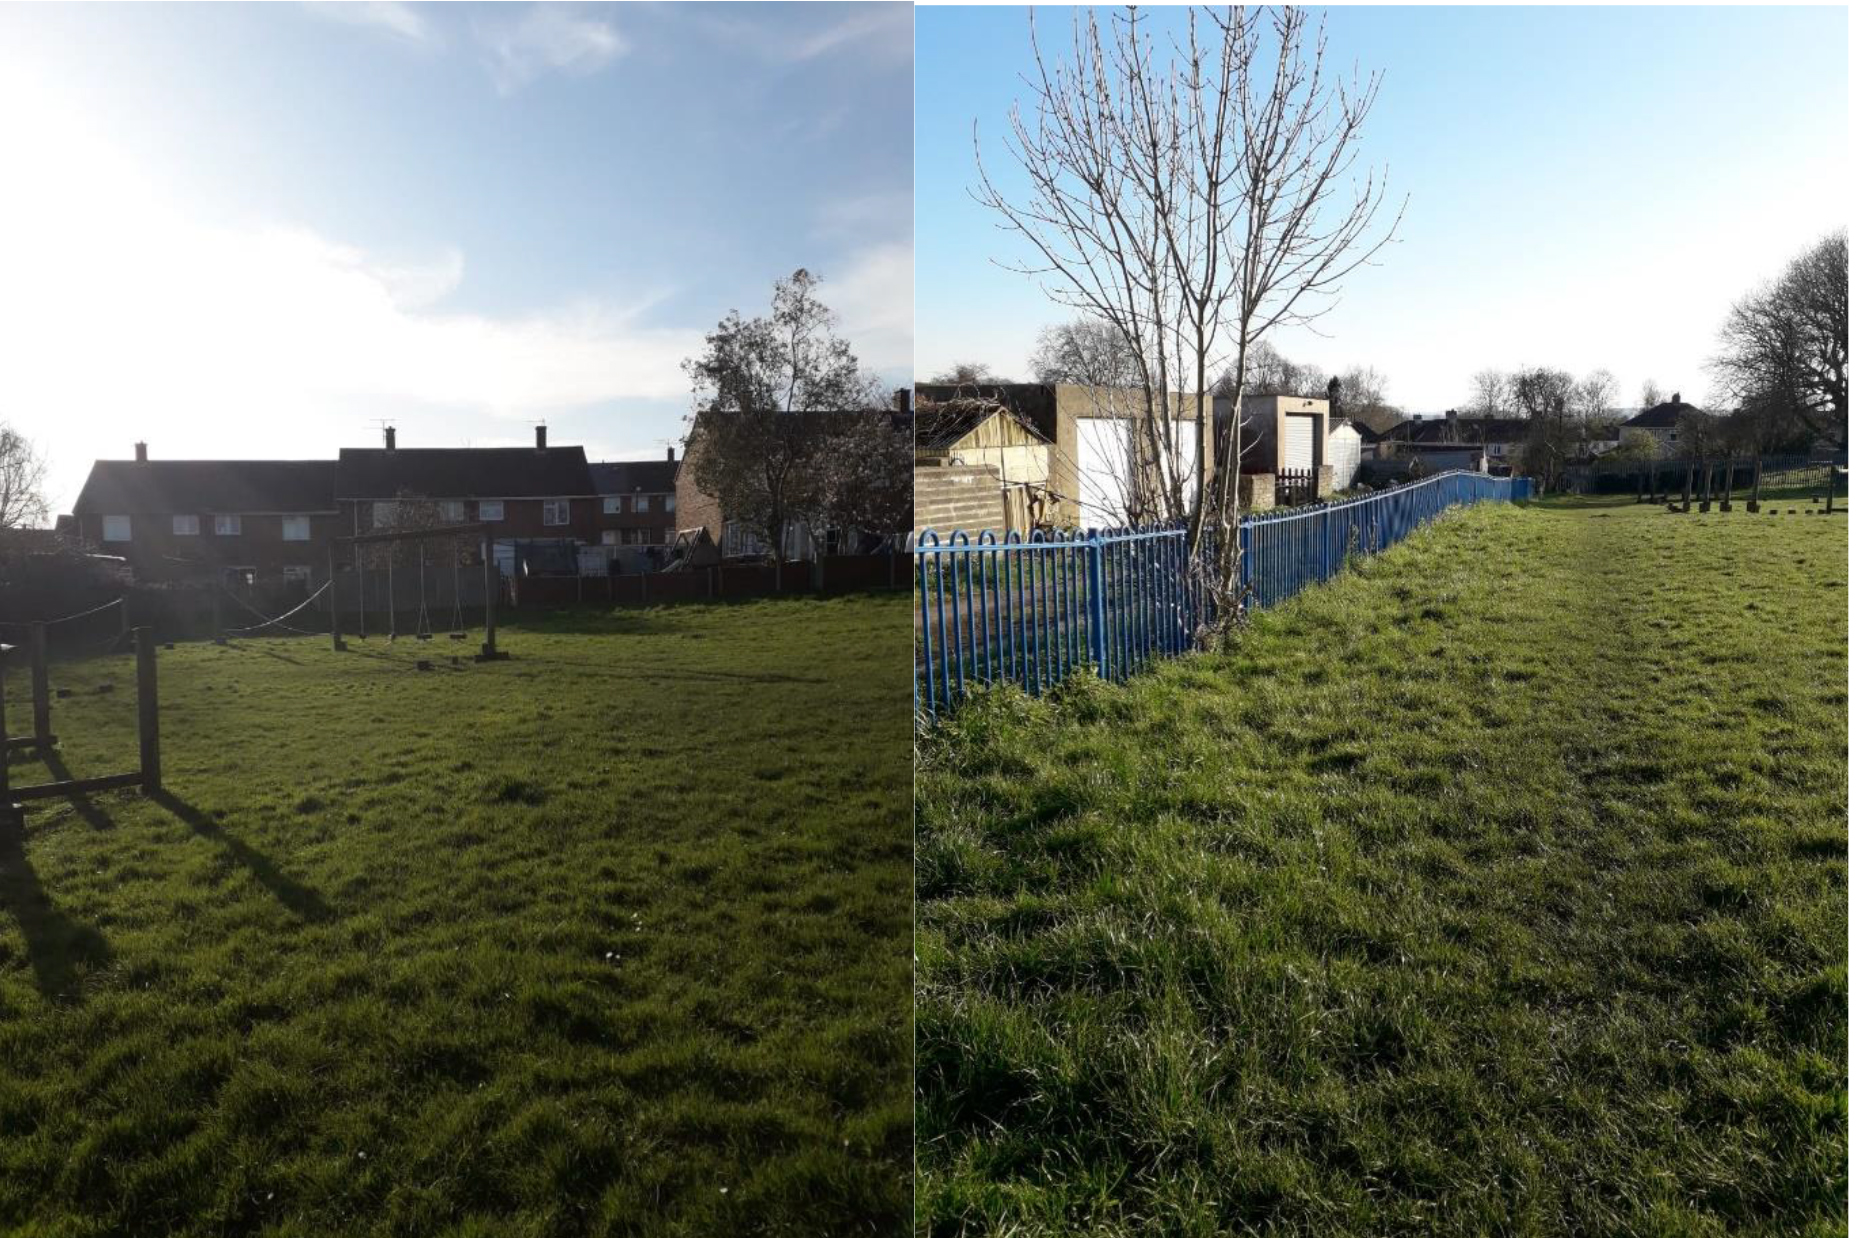 Colebrook Park as it is now